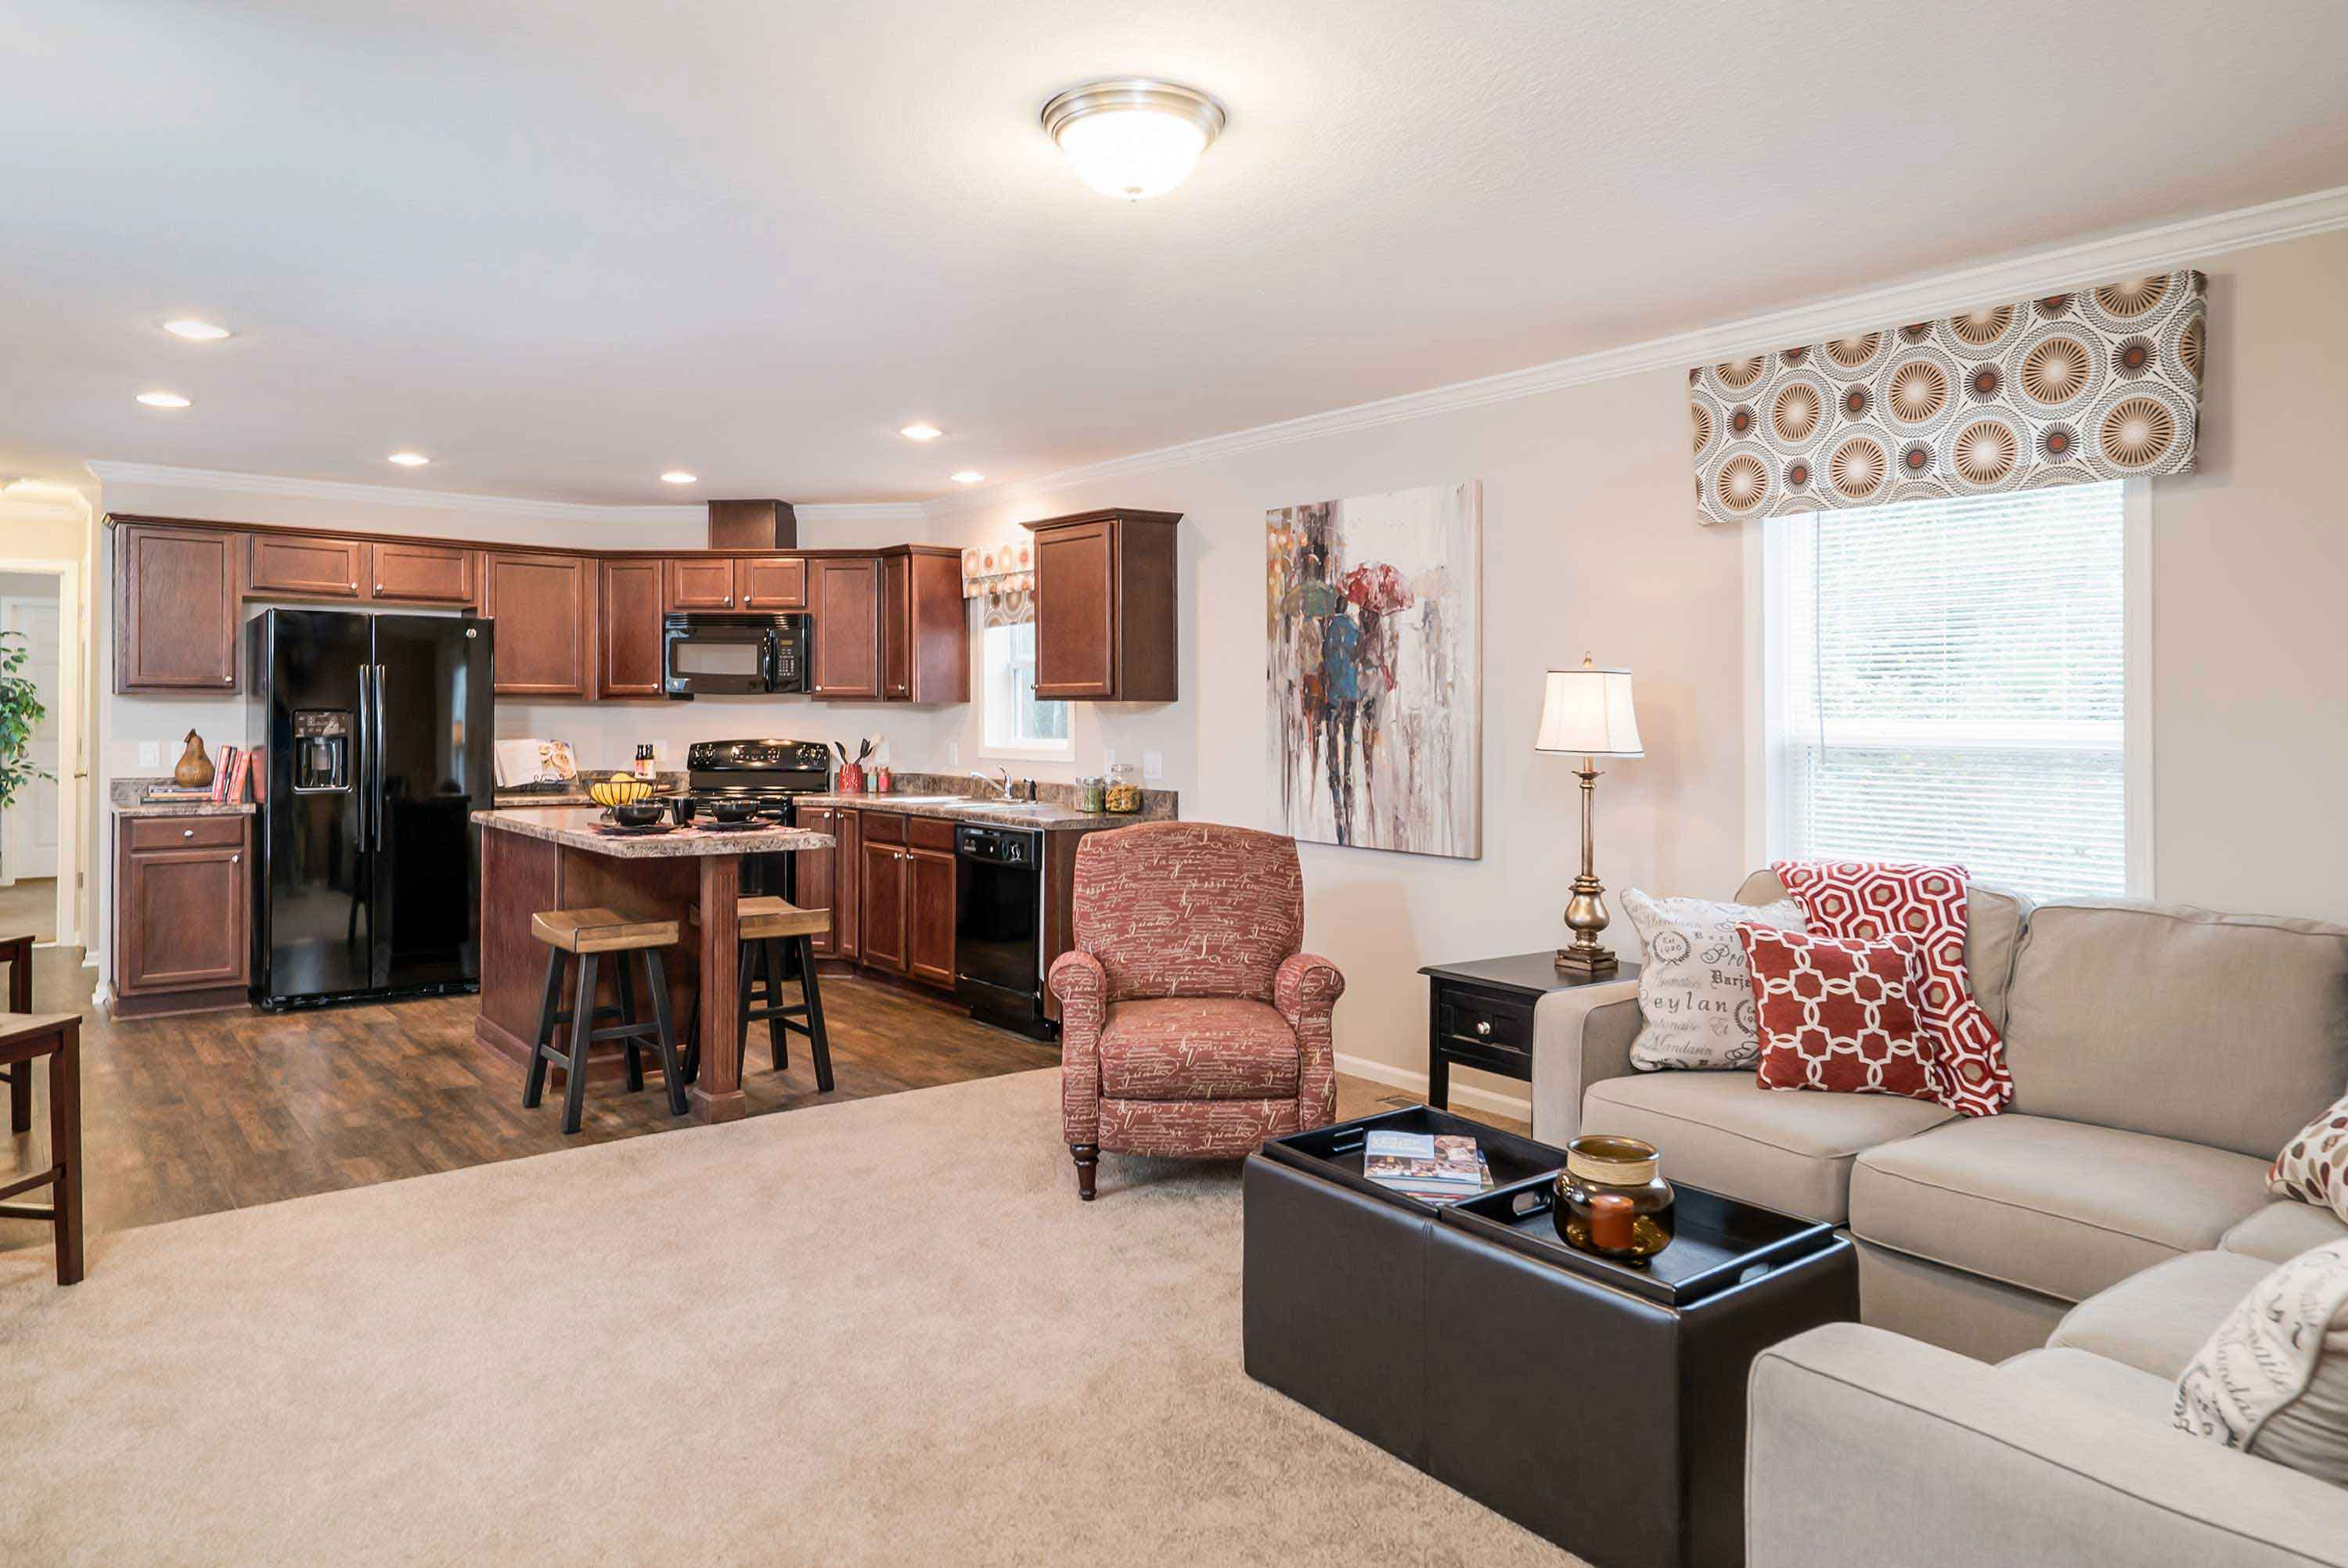 Freedom Living Oxford By Franklin Homes